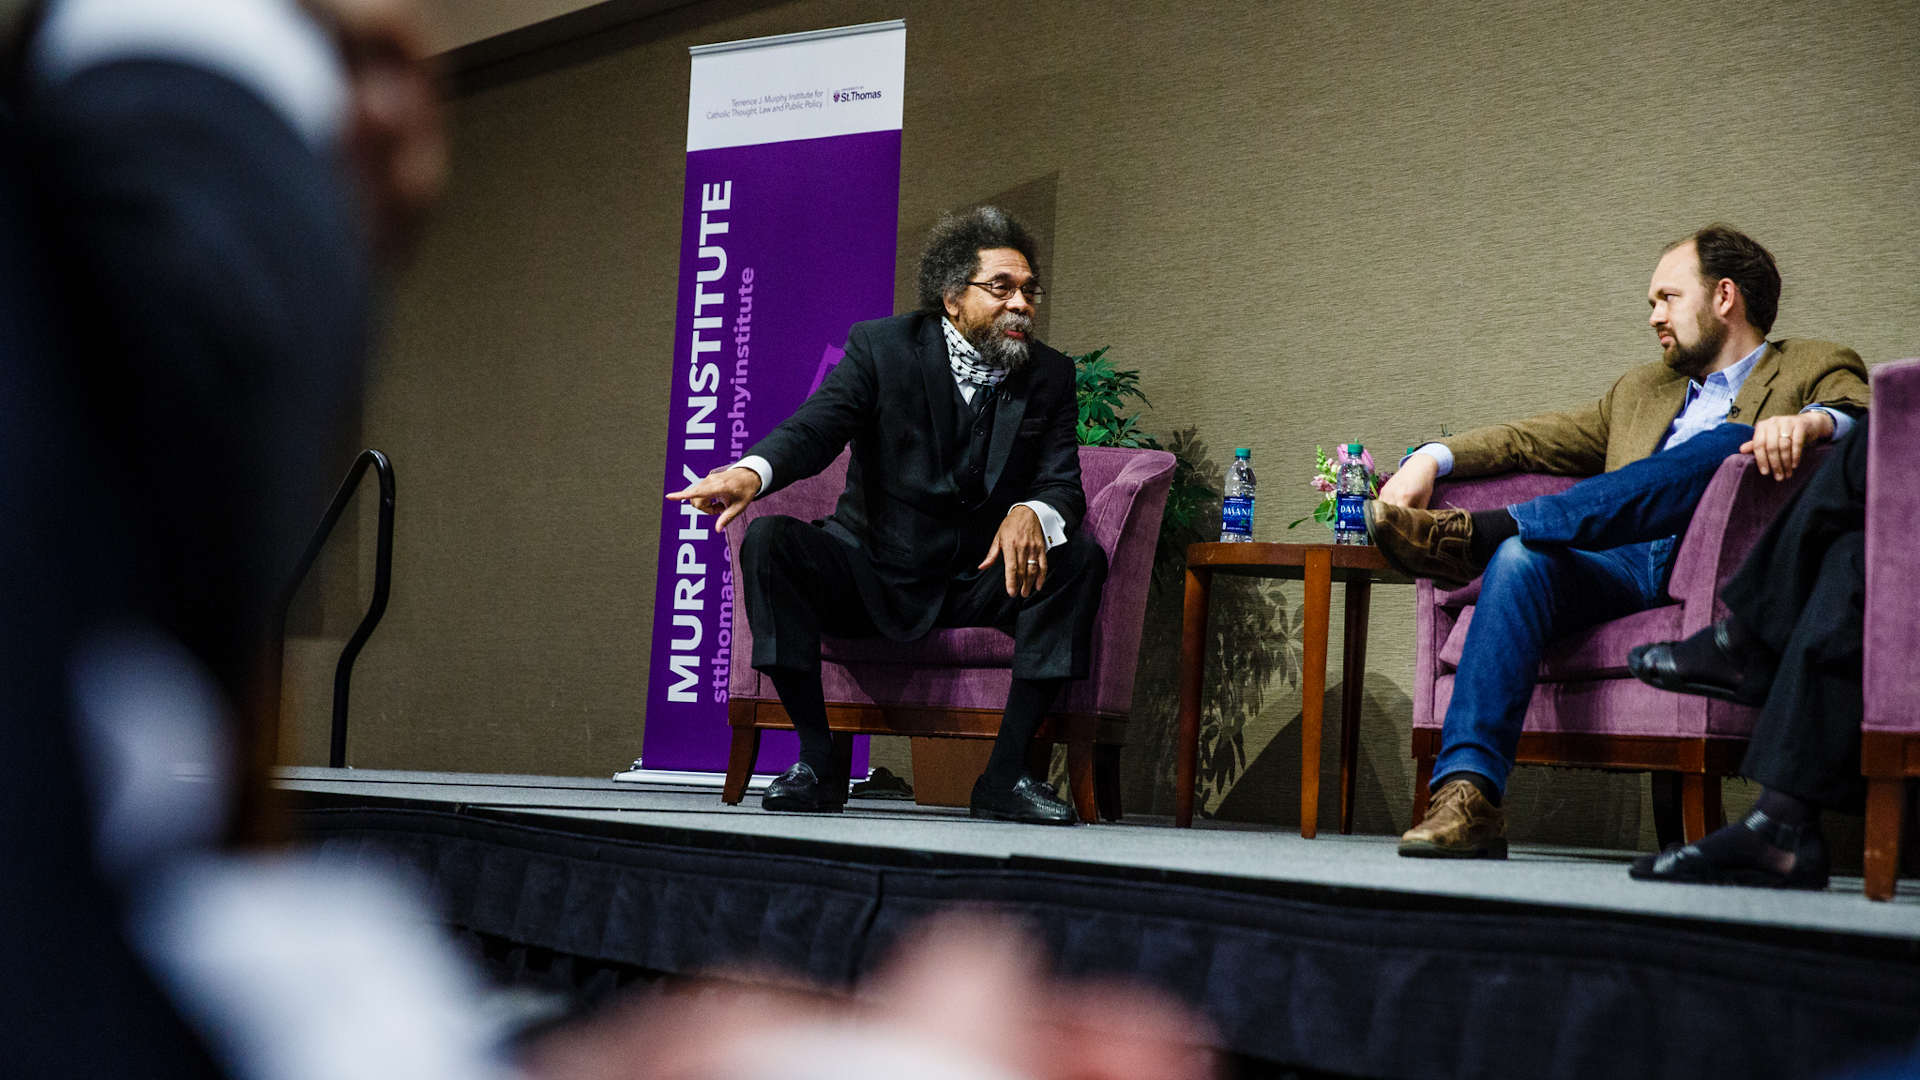 Cornell West and Ross Douthat talk during a panel discussion.